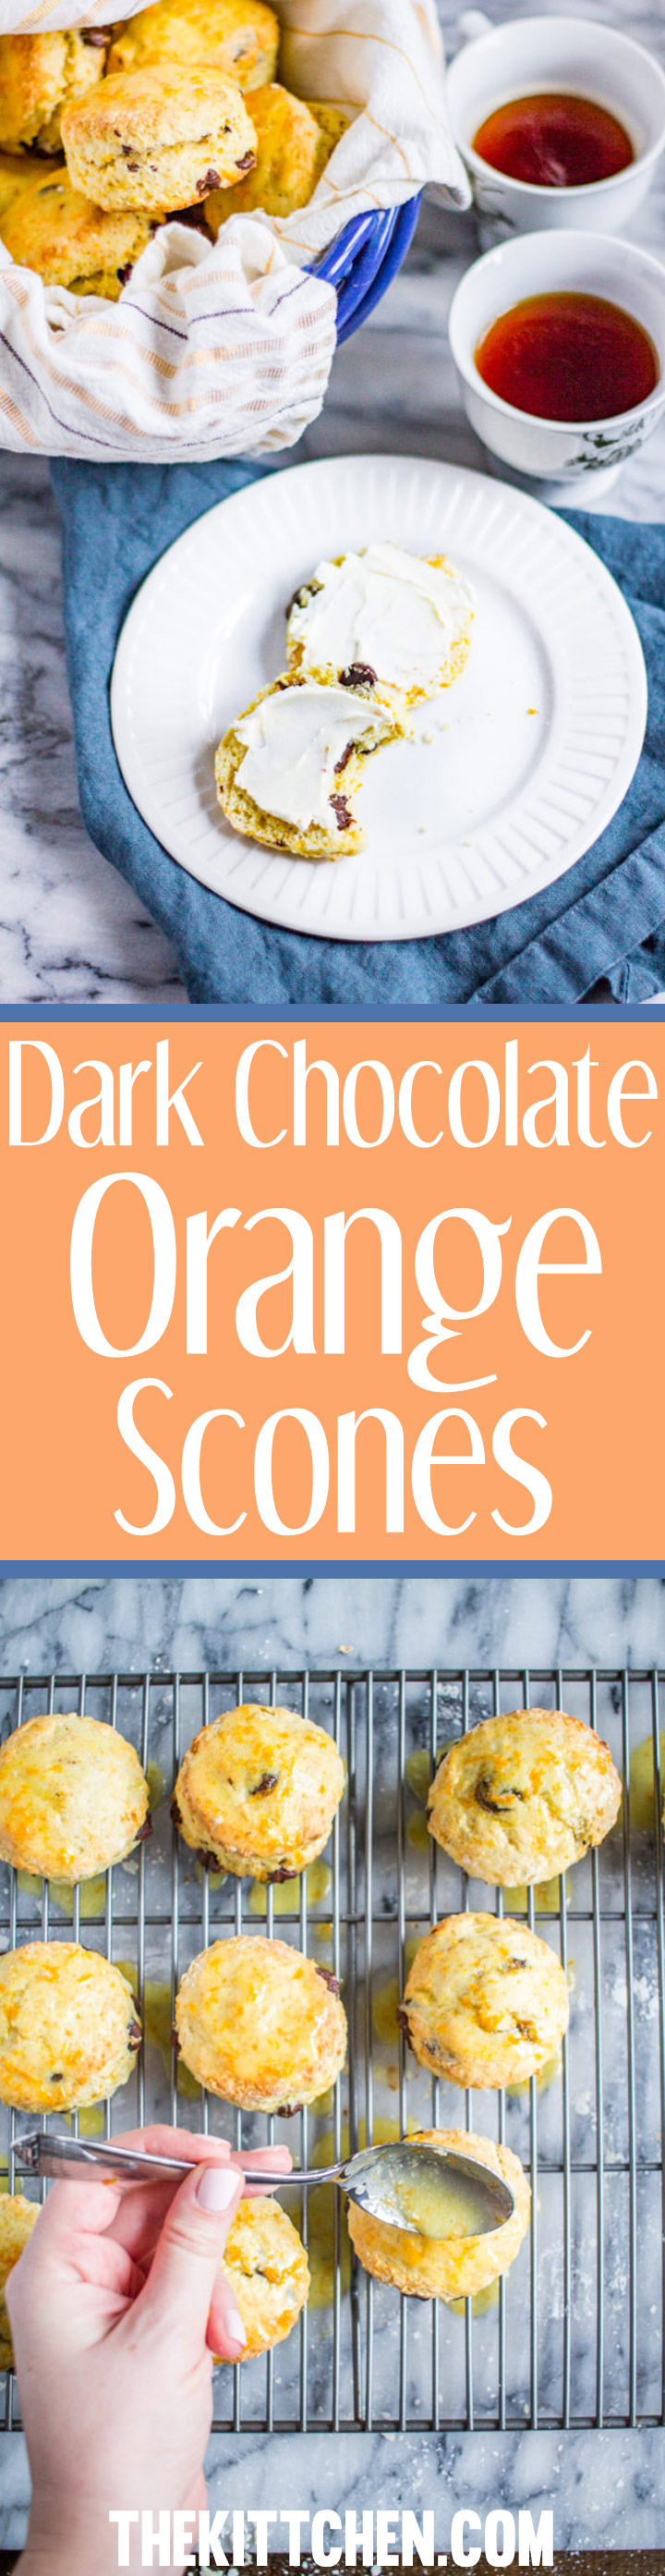 Dark Chocolate Orange Scones bring the classic Italian flavor combination of orange and dark chocolate together with scones, a classic British pastry. Oh, and the total preparation time is just 10 minutes of active preparation and 12 minutes of baking!